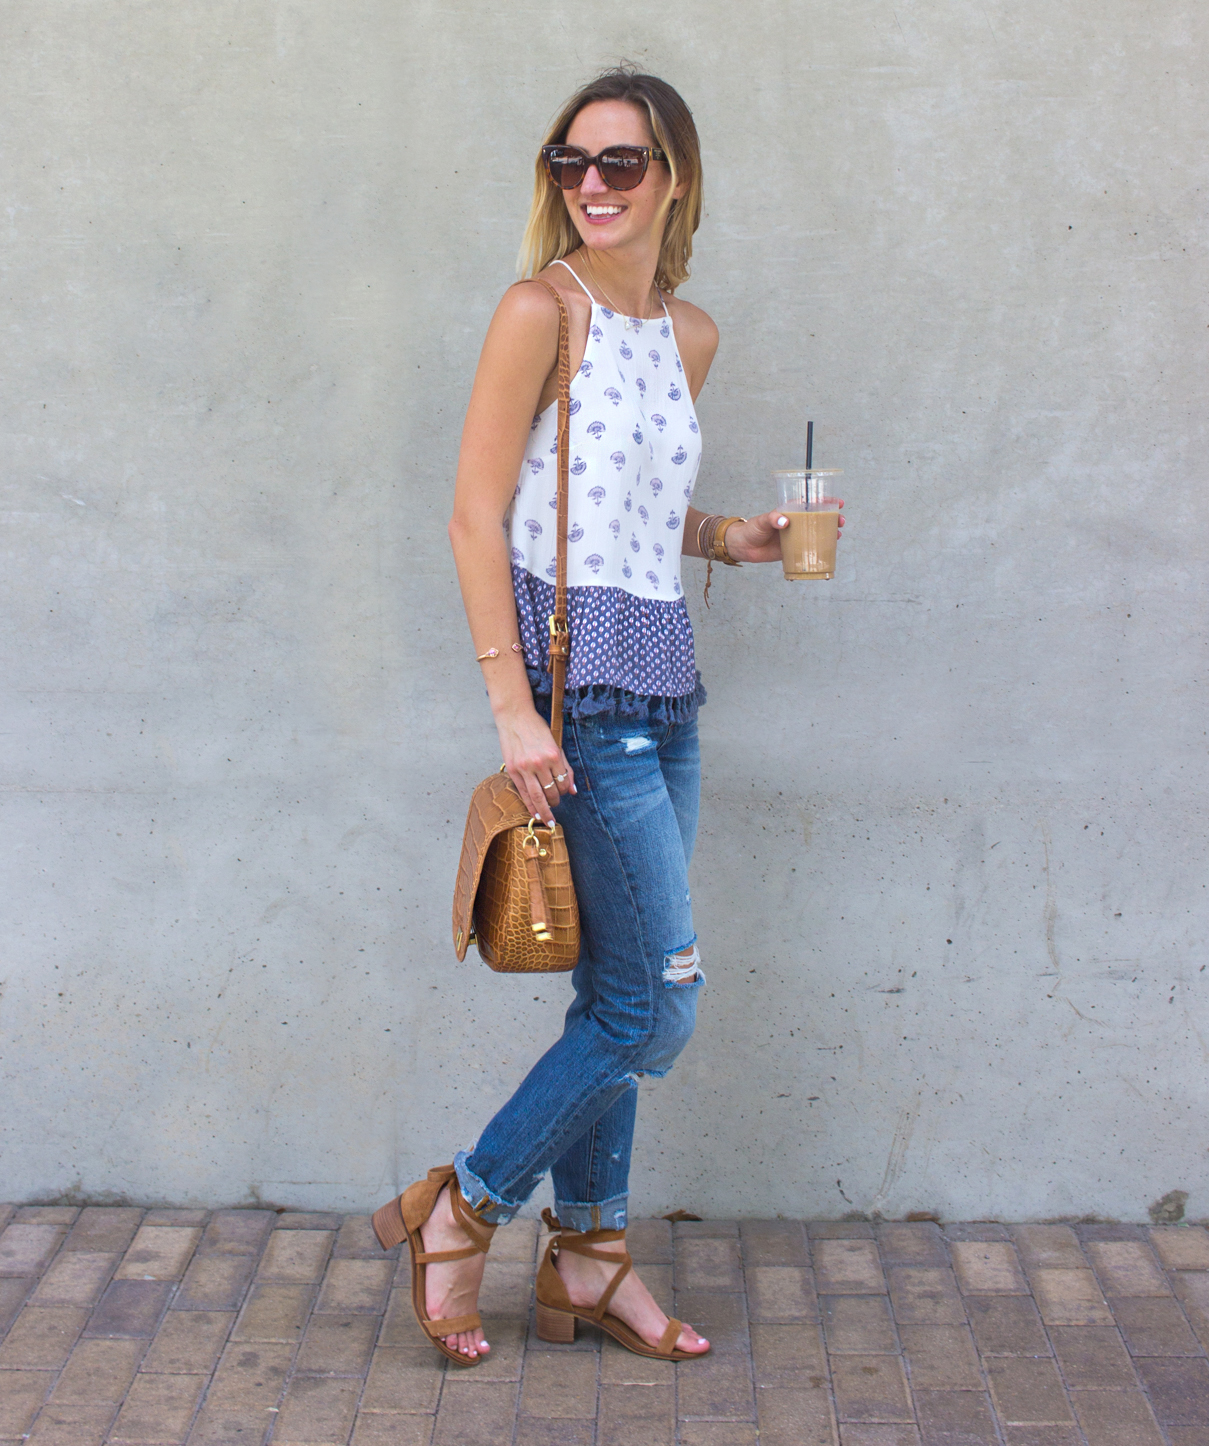 livvyland-blog-olivia-watson-vandi-fair-w-hotel-atx-staycation-stay-cation-austin-texas-fashion-travel-blogger-hotel-review-coffee-run-outfit-abercrombie-tassel-trim-tank